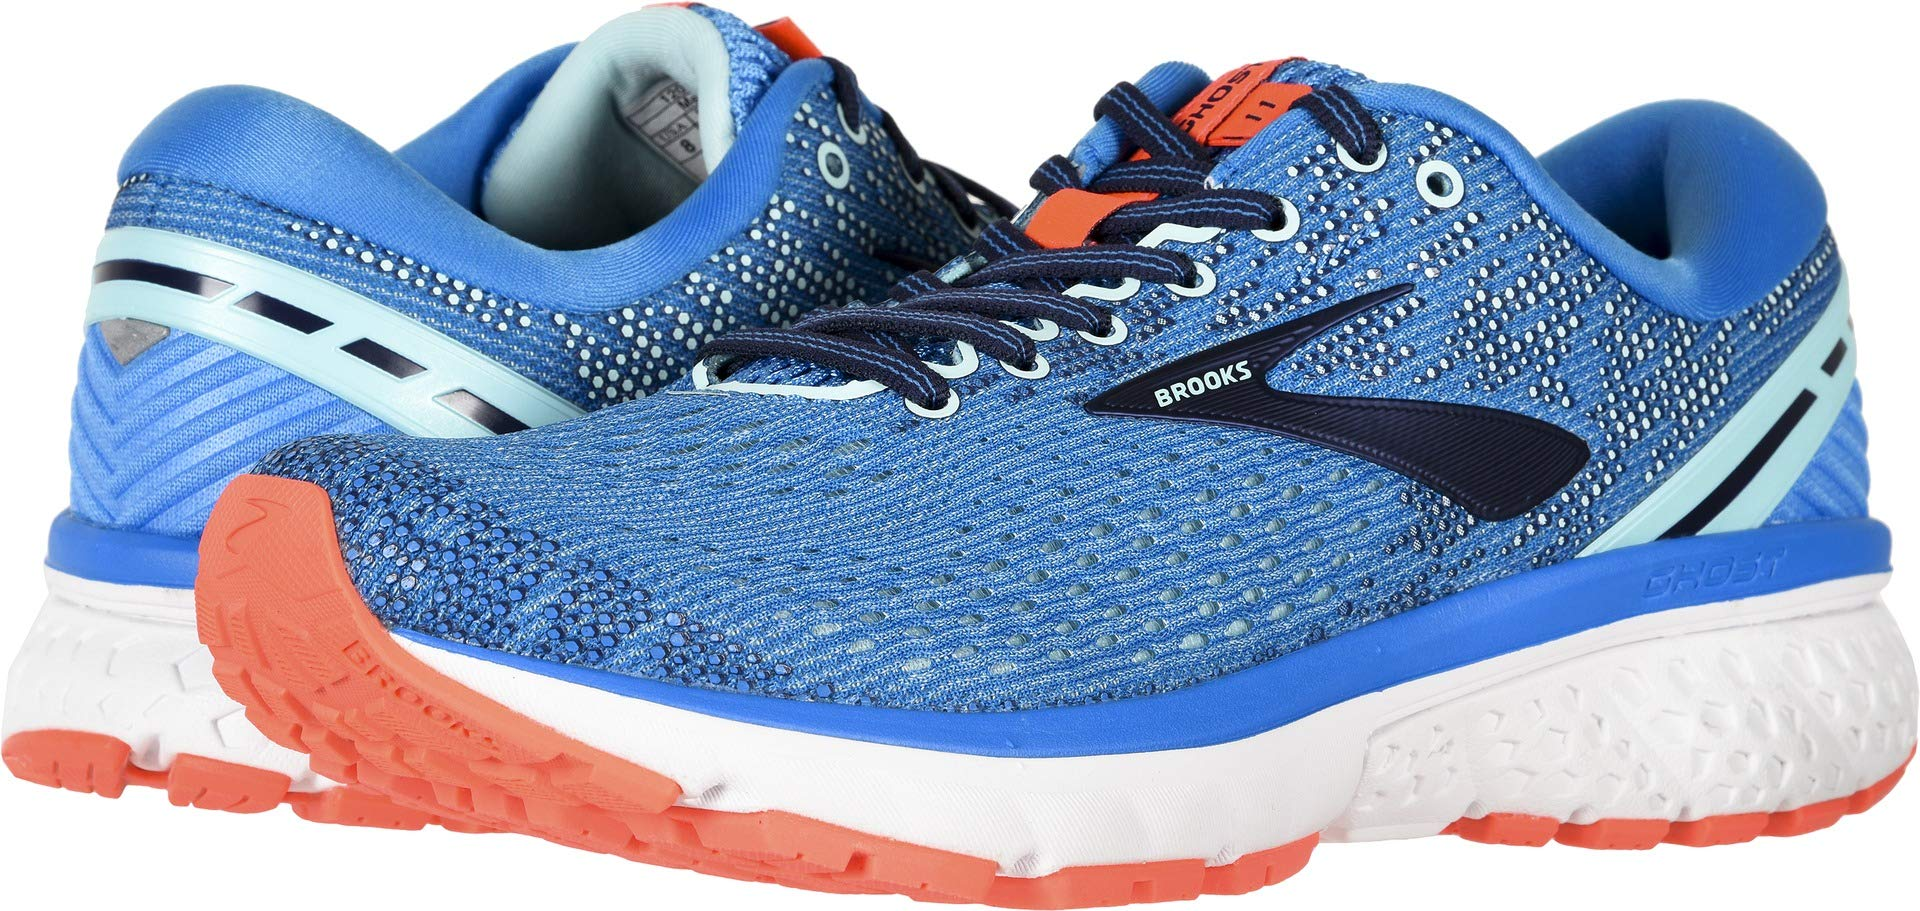 Brooks Women's Ghost 11 Blue/Navy/Coral 5 B US by Brooks (Image #1)